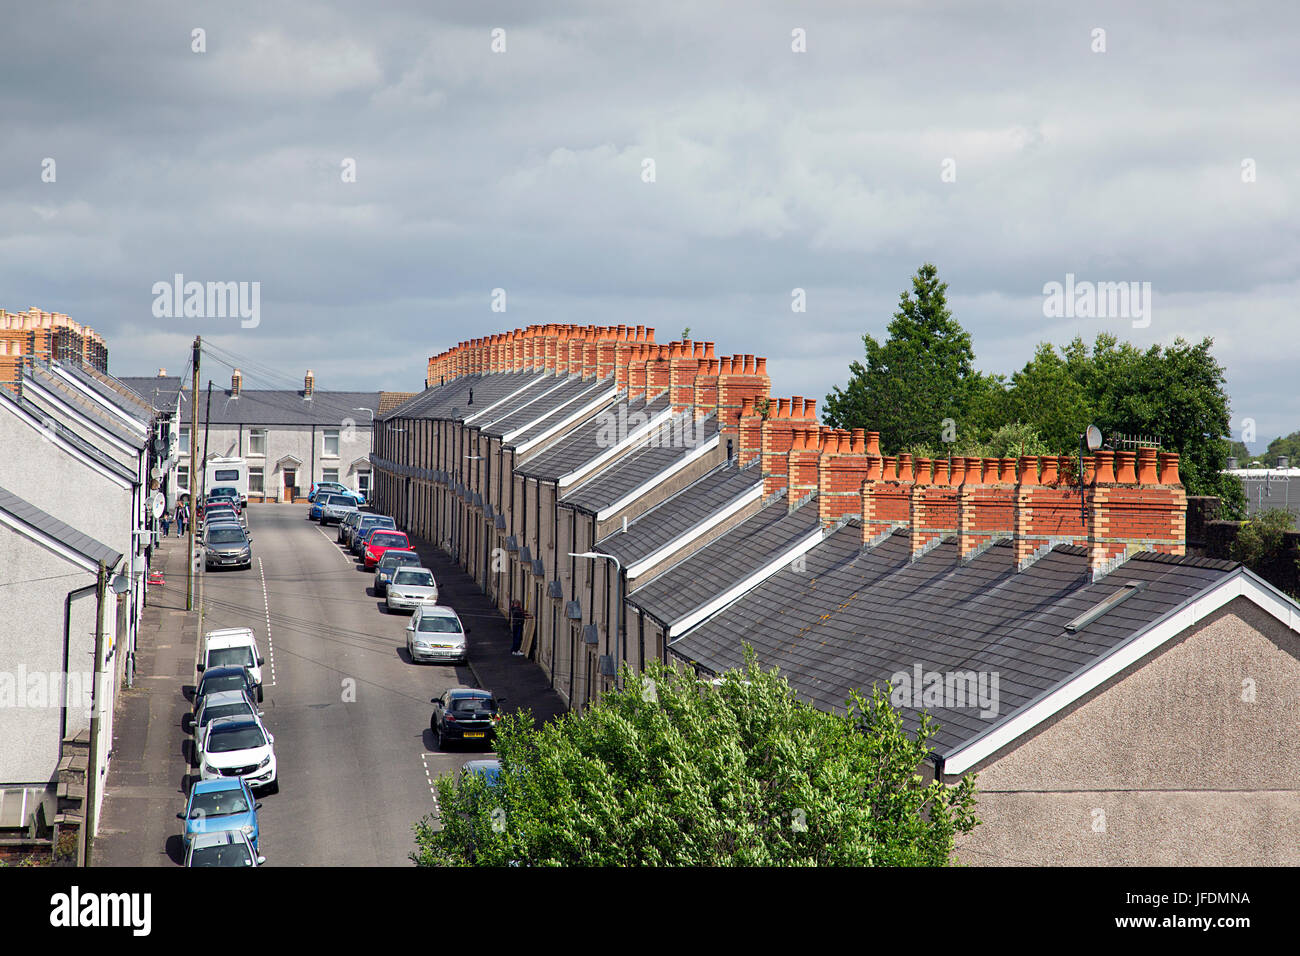 Rooftops and chimneys on a row of terraced houses in Wales - Stock Image